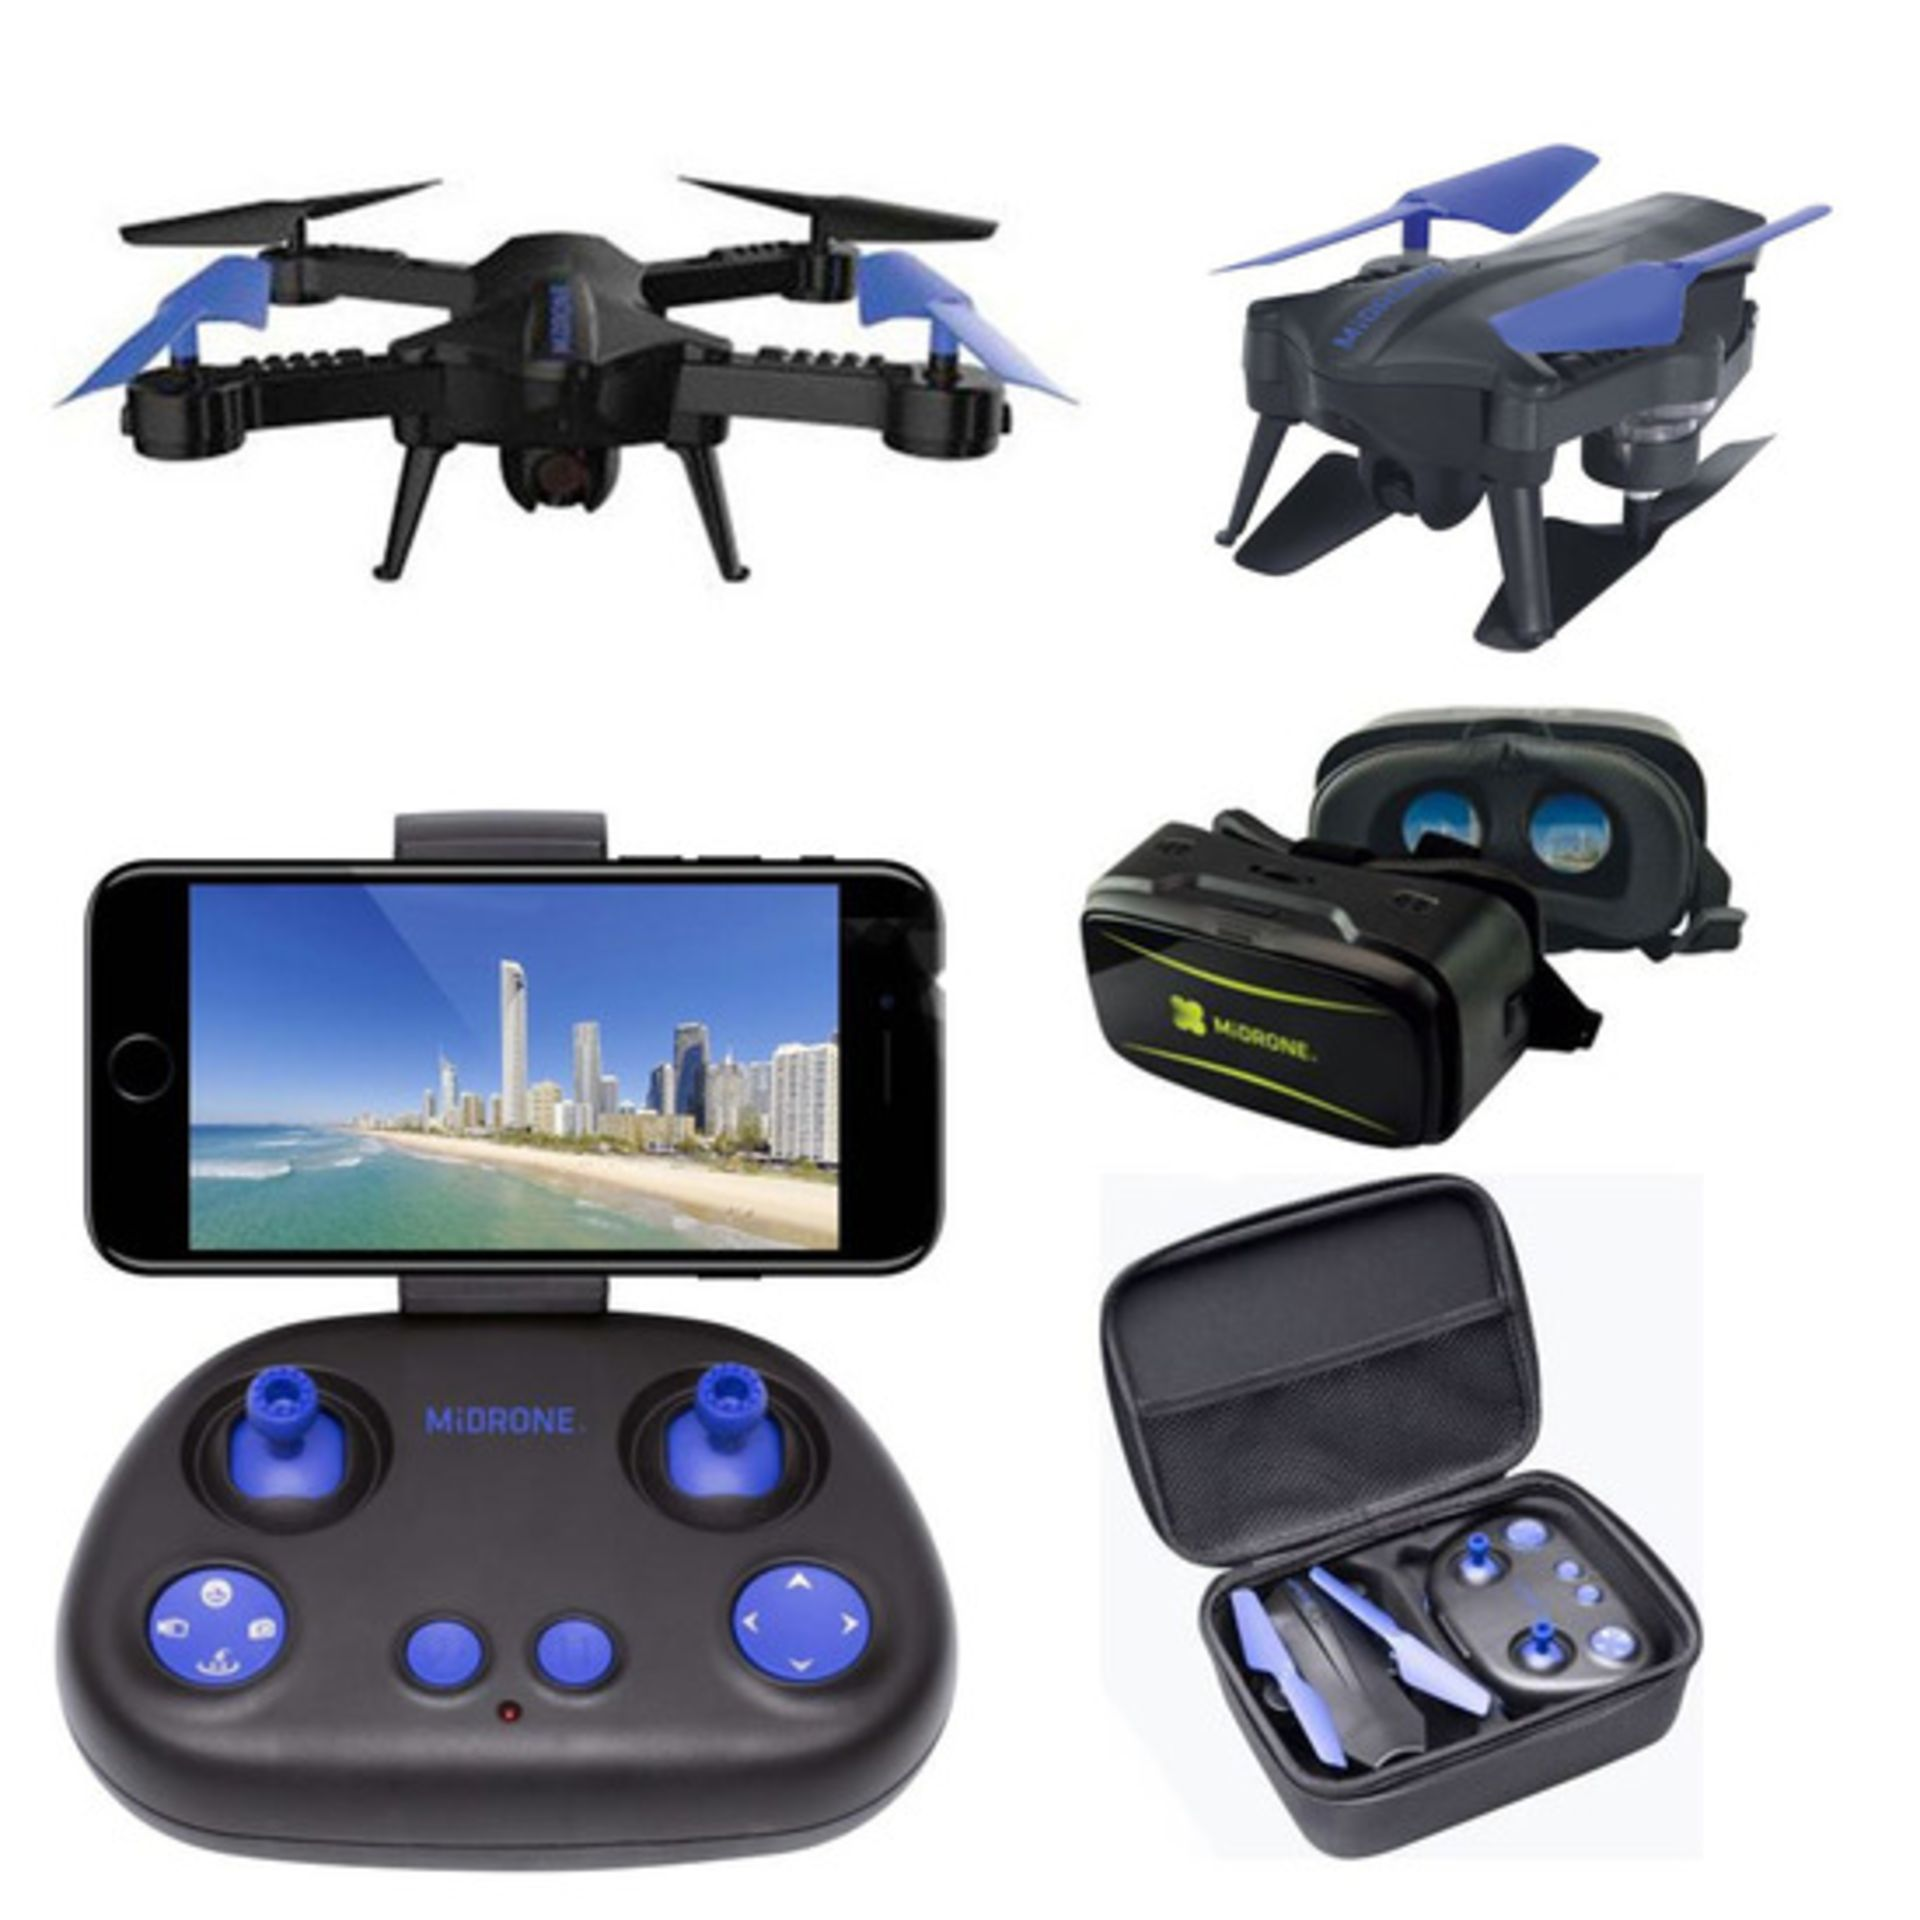 Lot 50053 - V Brand New MiDrone HD WiFi Drone With Intergrated Full HD Camera PLUS VR Kit (Goggles & Case) -